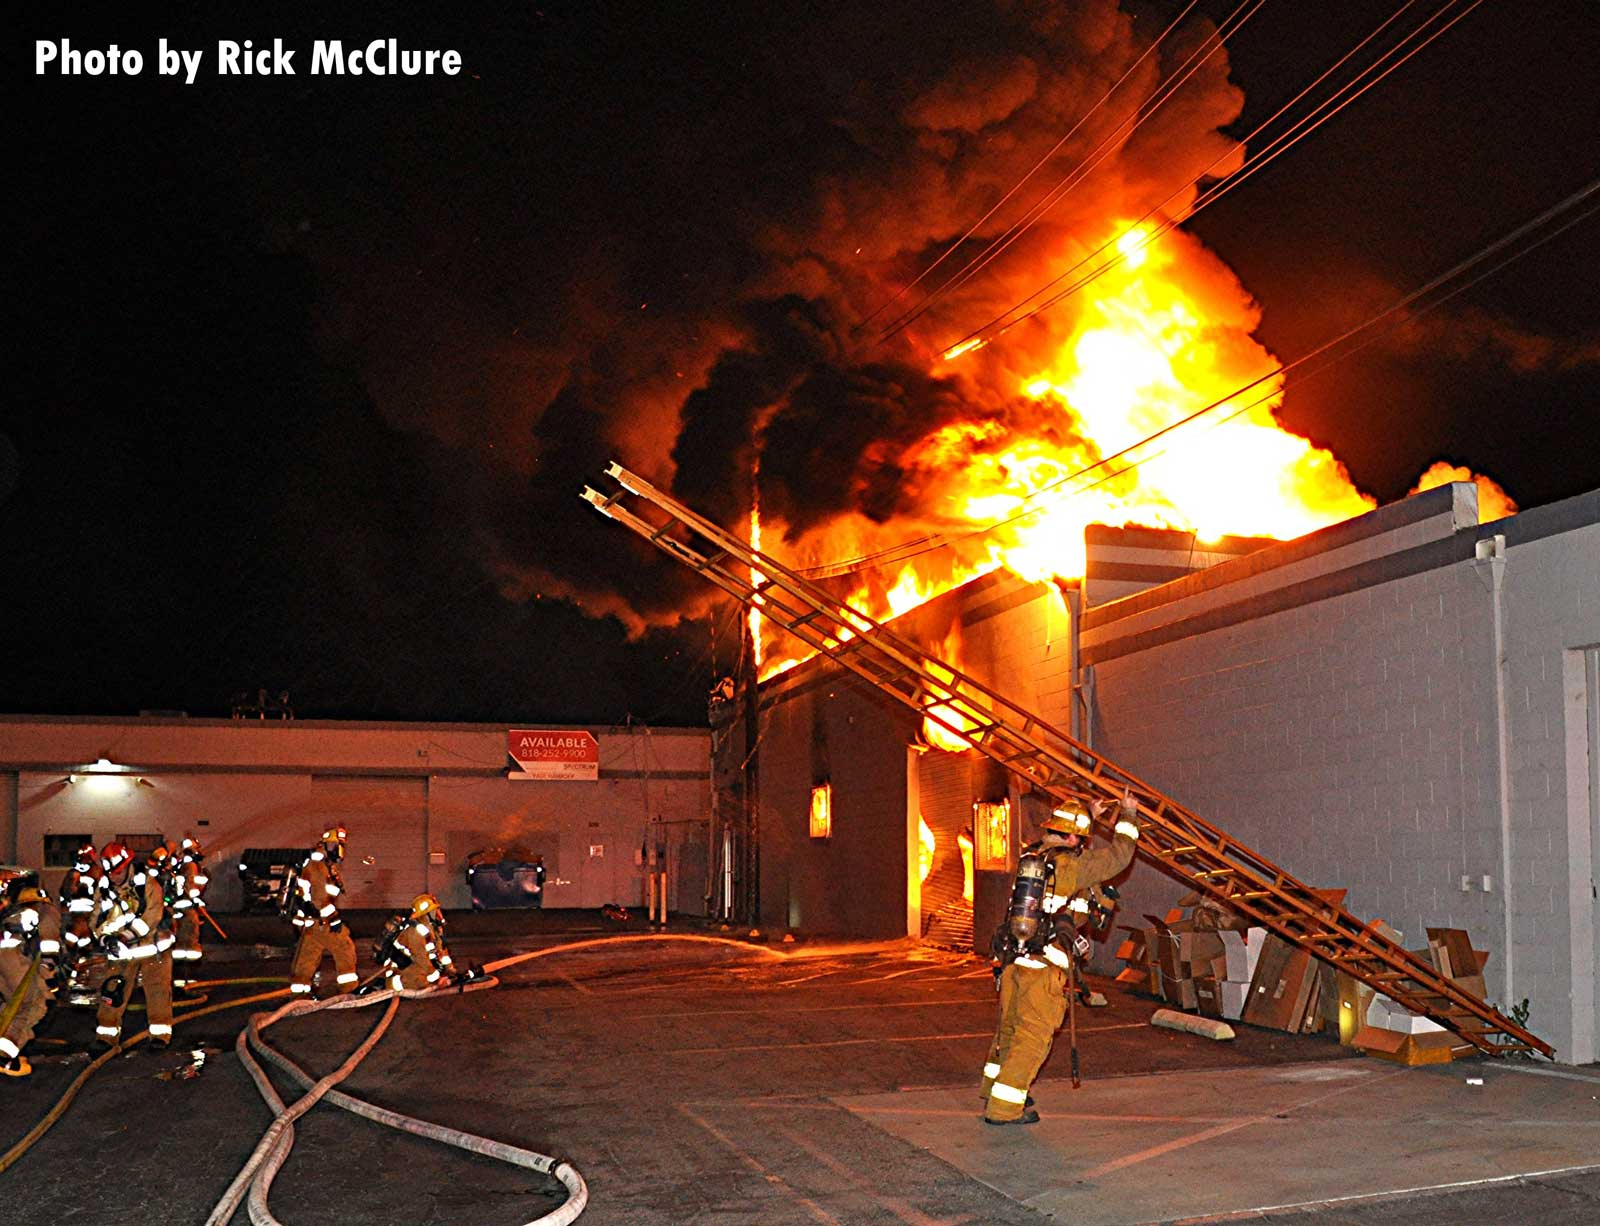 Flames rage outside a building as LAFD crew members work